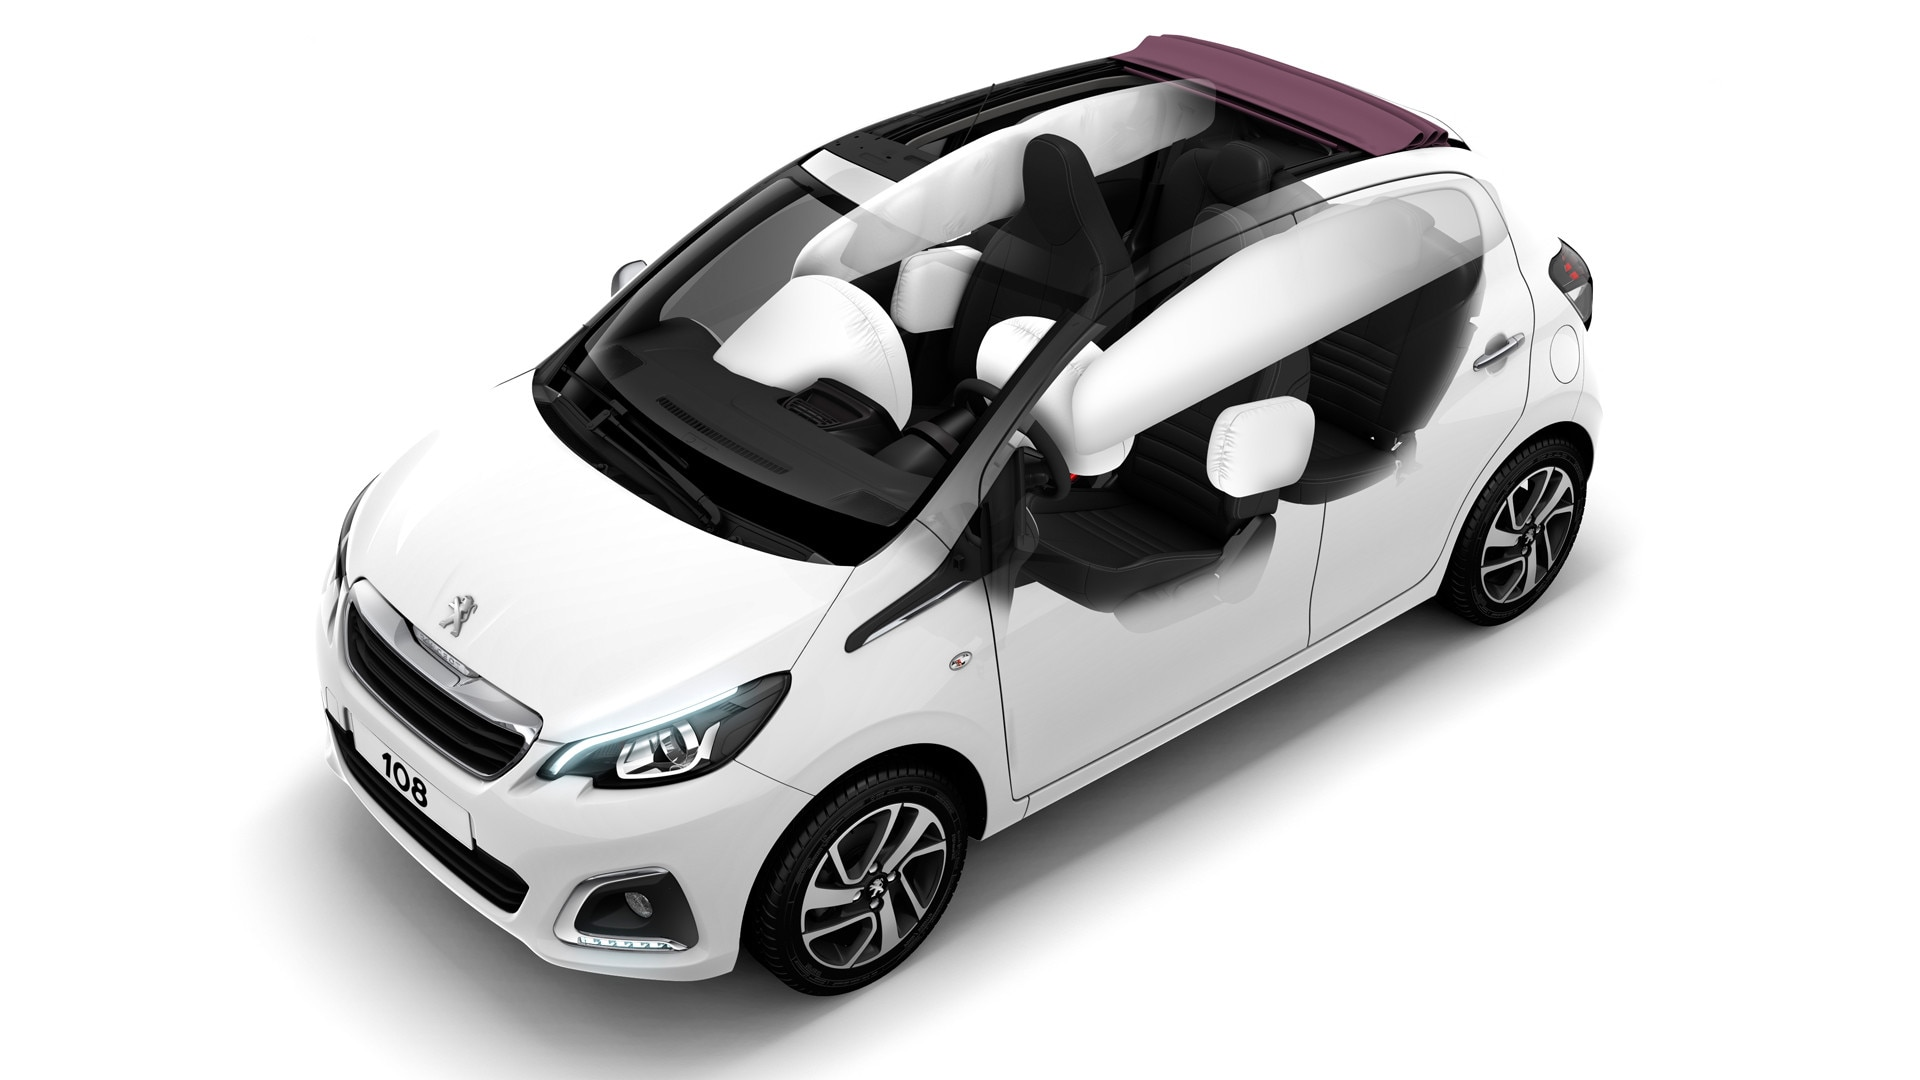 peugeot 108 5 portes photos et vid os de la voiture. Black Bedroom Furniture Sets. Home Design Ideas